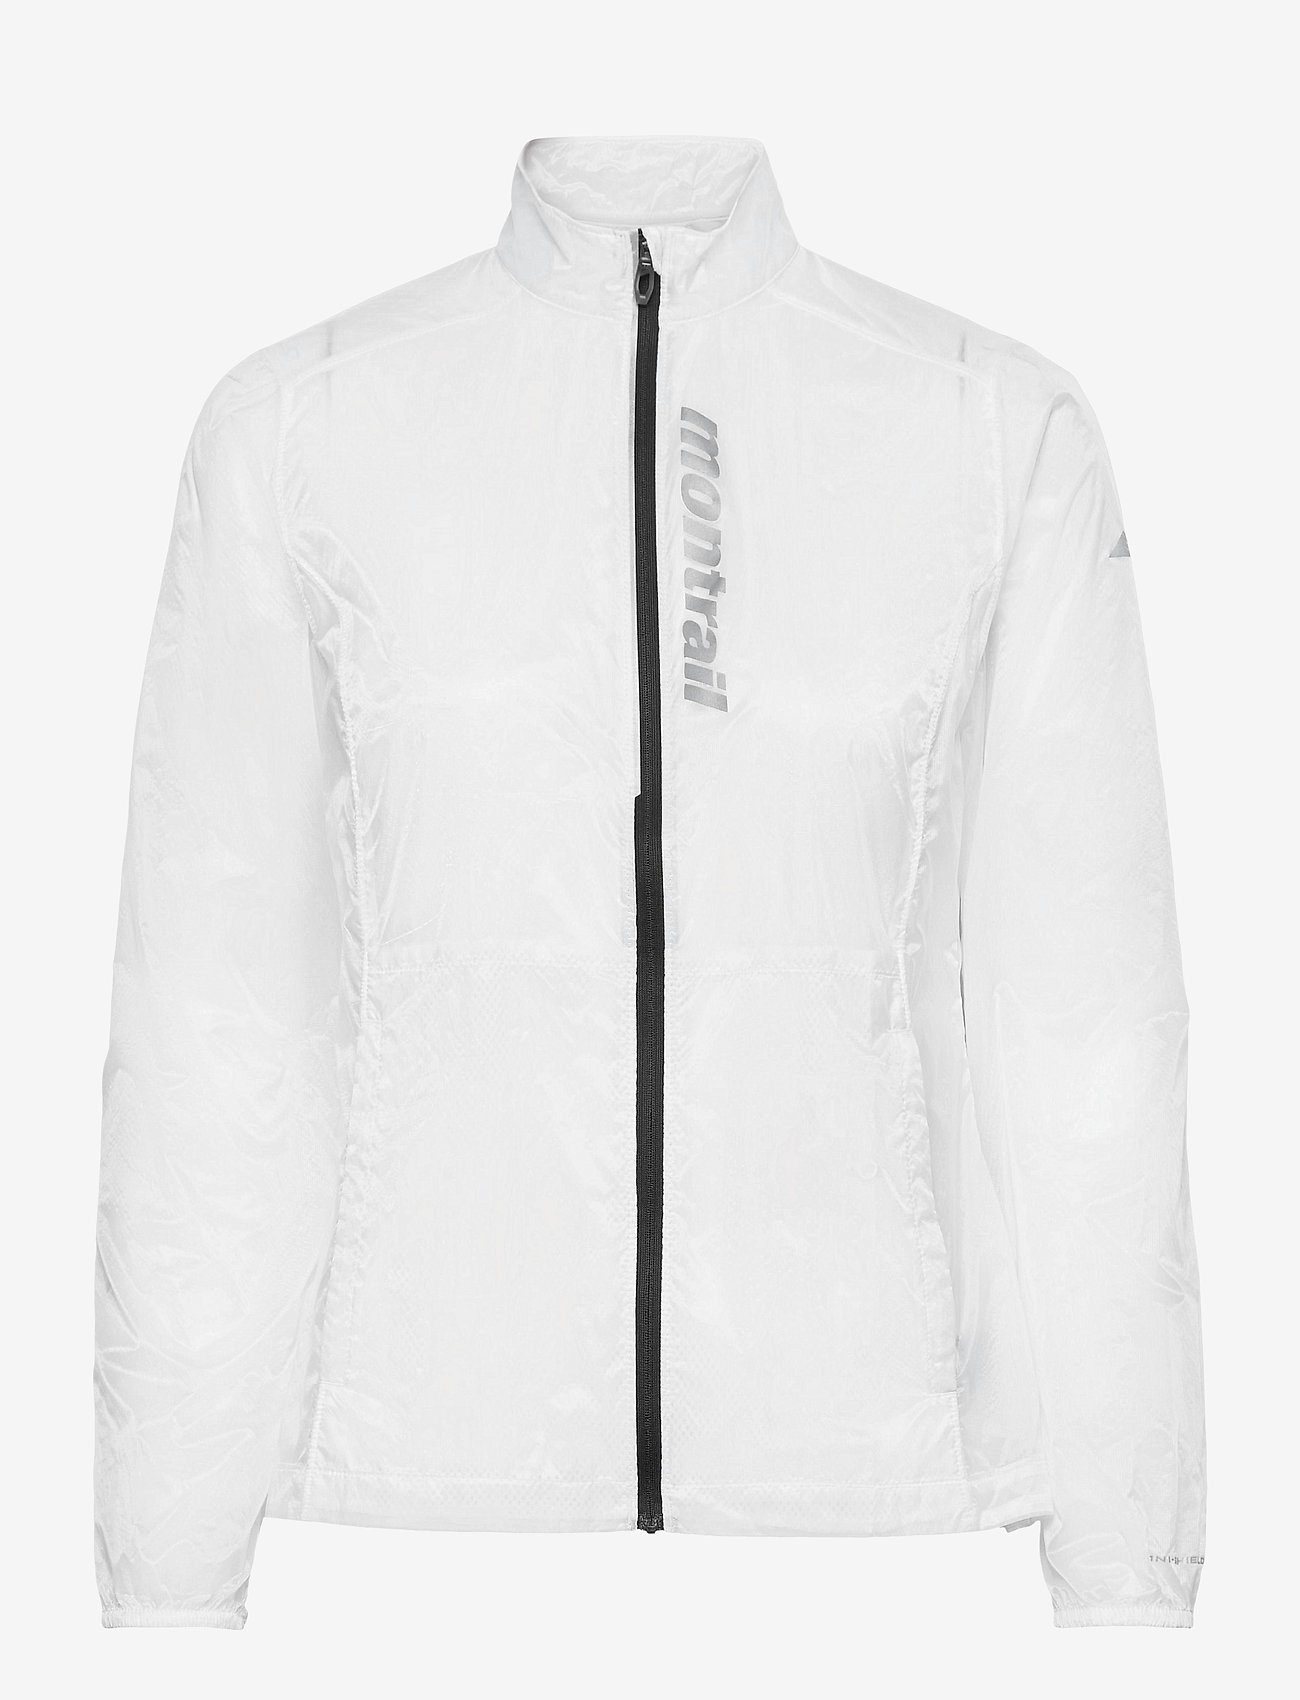 Columbia - W FKT™ Windbreaker Jacket - white aerial em - 0